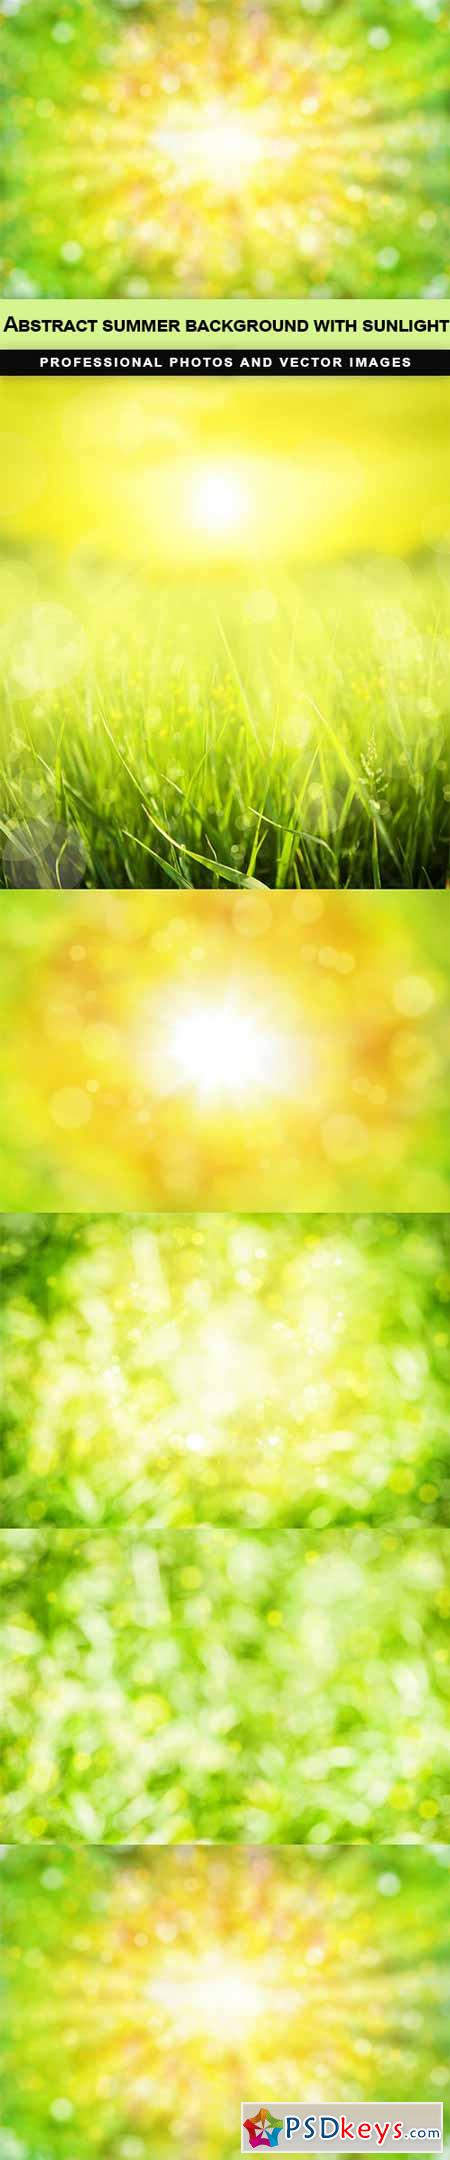 Abstract summer background with sunlight - 5 UHQ JPEG